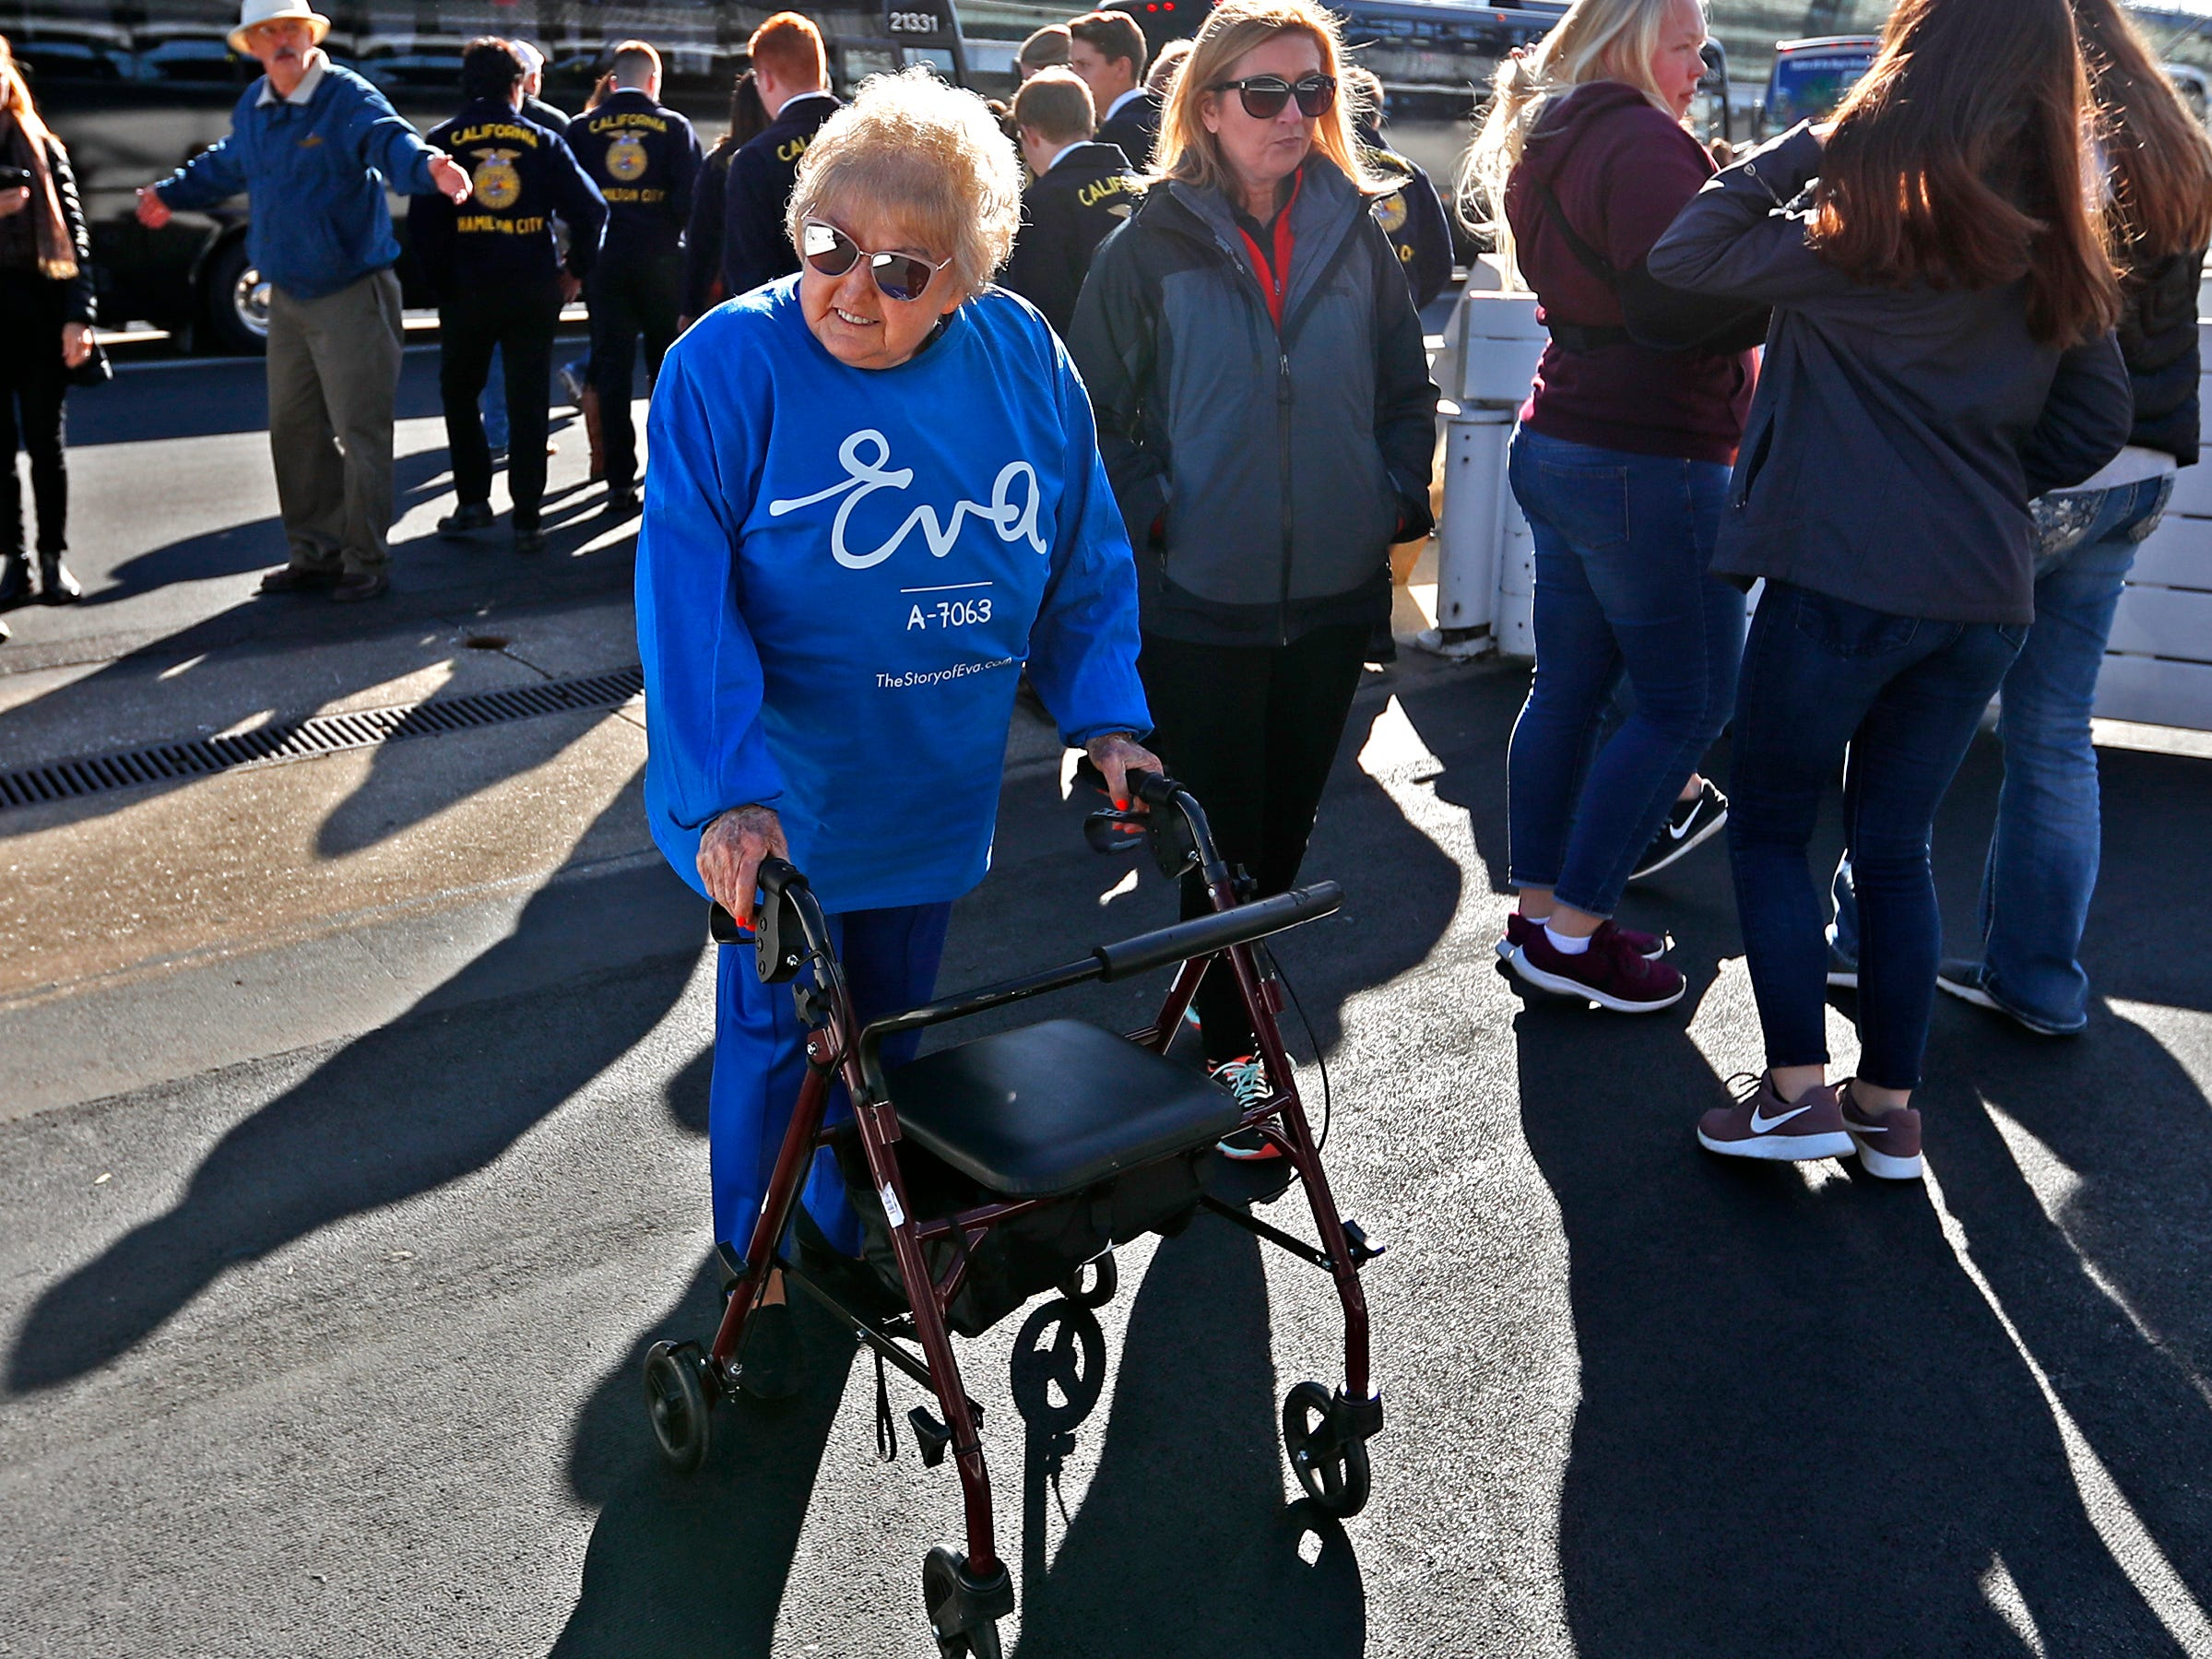 Holocaust survivor Eva Kor joins others at the Indianapolis Motor Speedway Yard of Bricks to get ready to welcome runners and pose for photos, Wednesday, Oct. 24, 2018, during the pace-setting run for the 2019 OneAmerica 500 Festival Mini-Marathon.  The 500 Festival will donate $1 to the CANDLES Holocaust Museum in Terre Haute for every mini-marathon participant who finishes the 2019 race in a better time than Team Eva.  Kor ran the very last of the relay race.